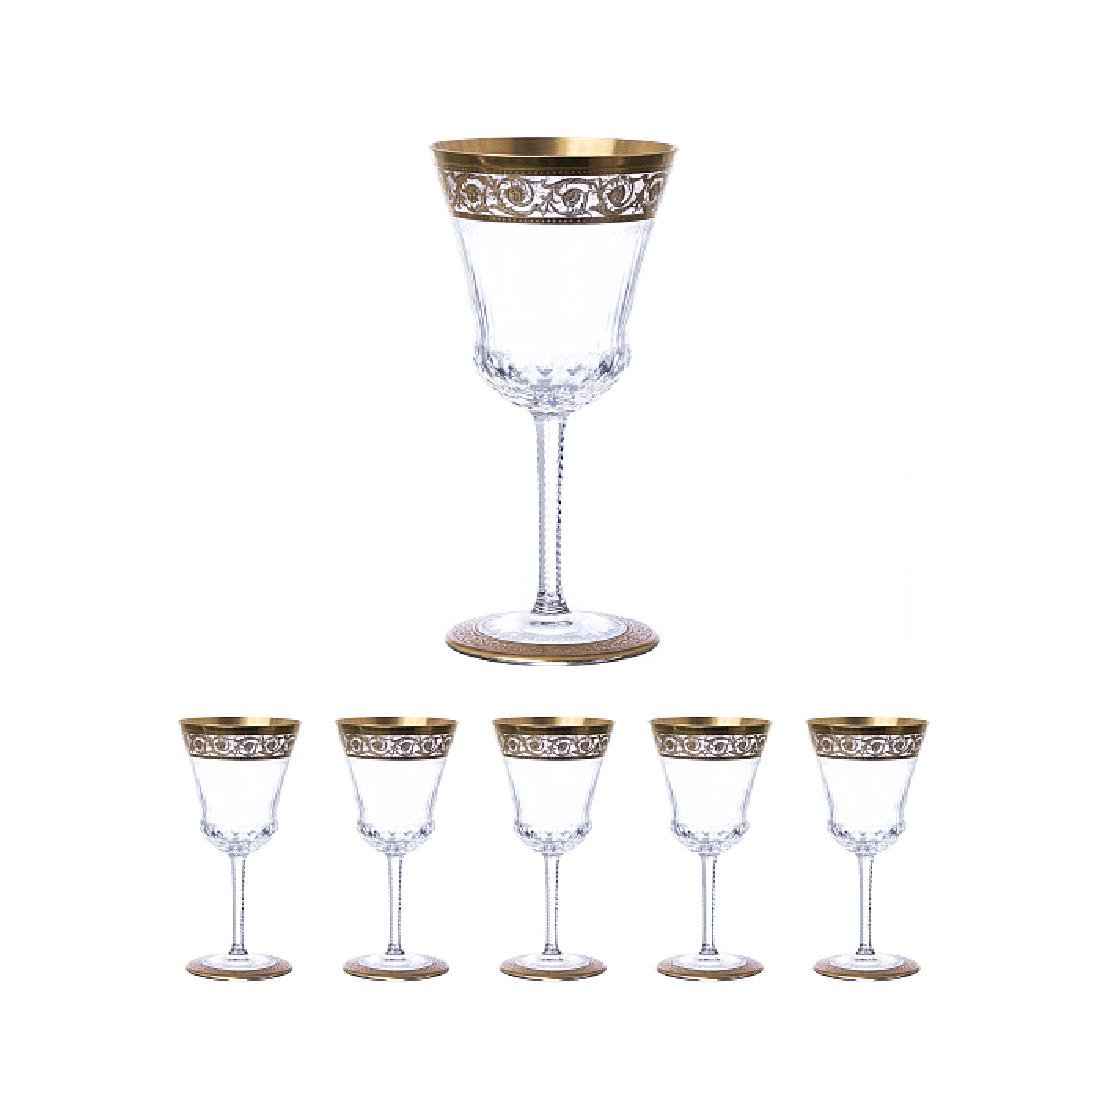 SAINT LOUIS - Six red wine glasses in crystal